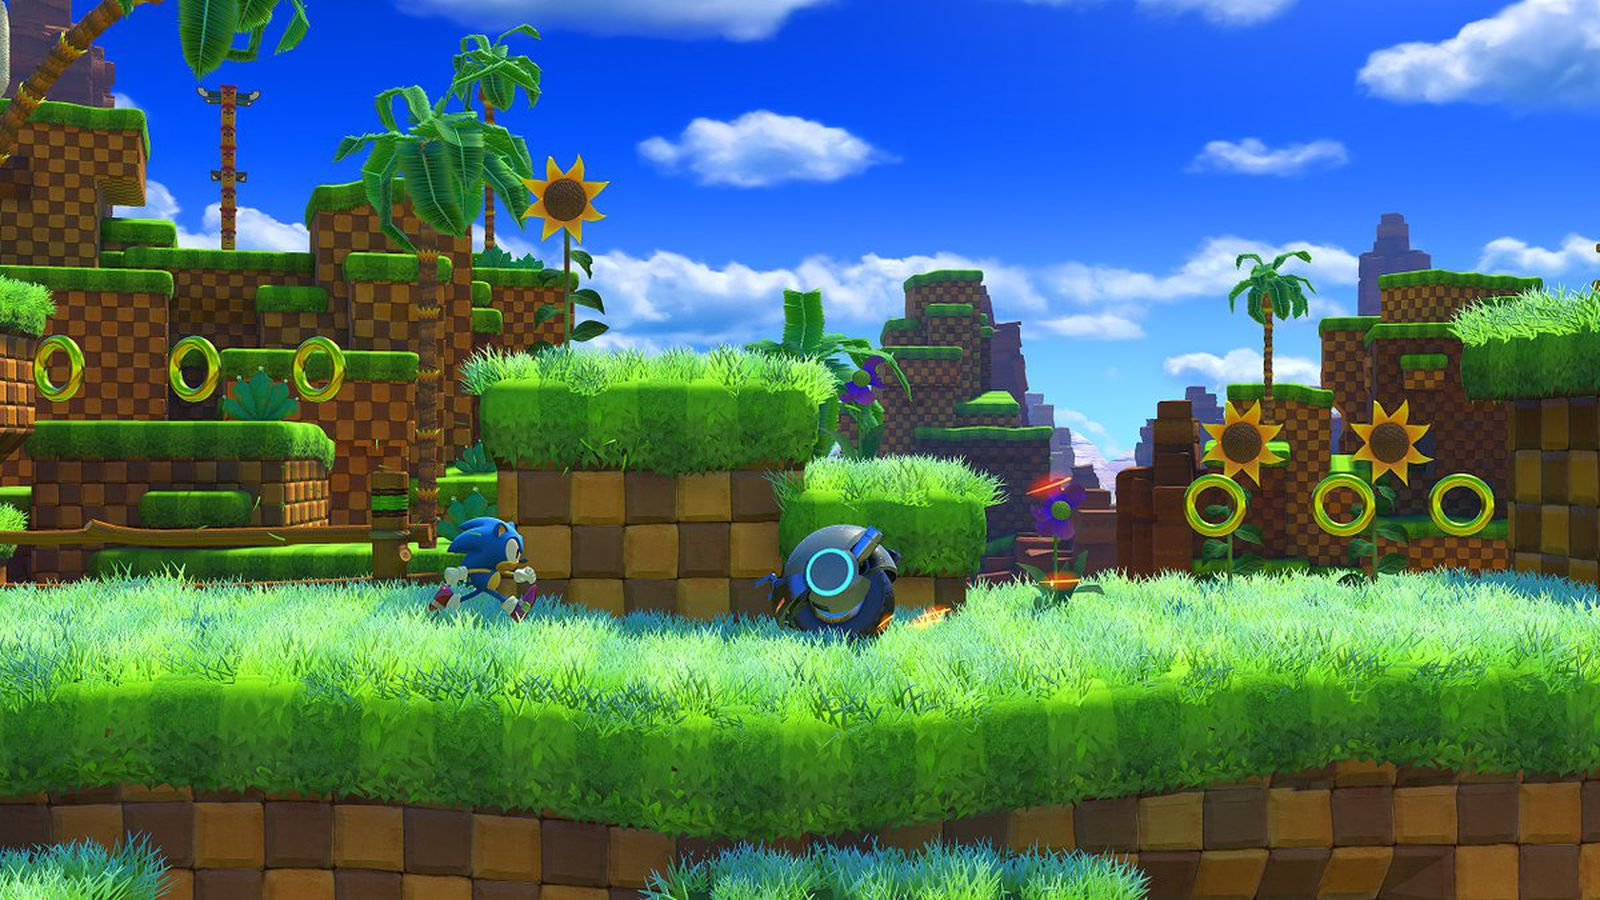 Sonic fans are getting a little tired of Green Hill Zone